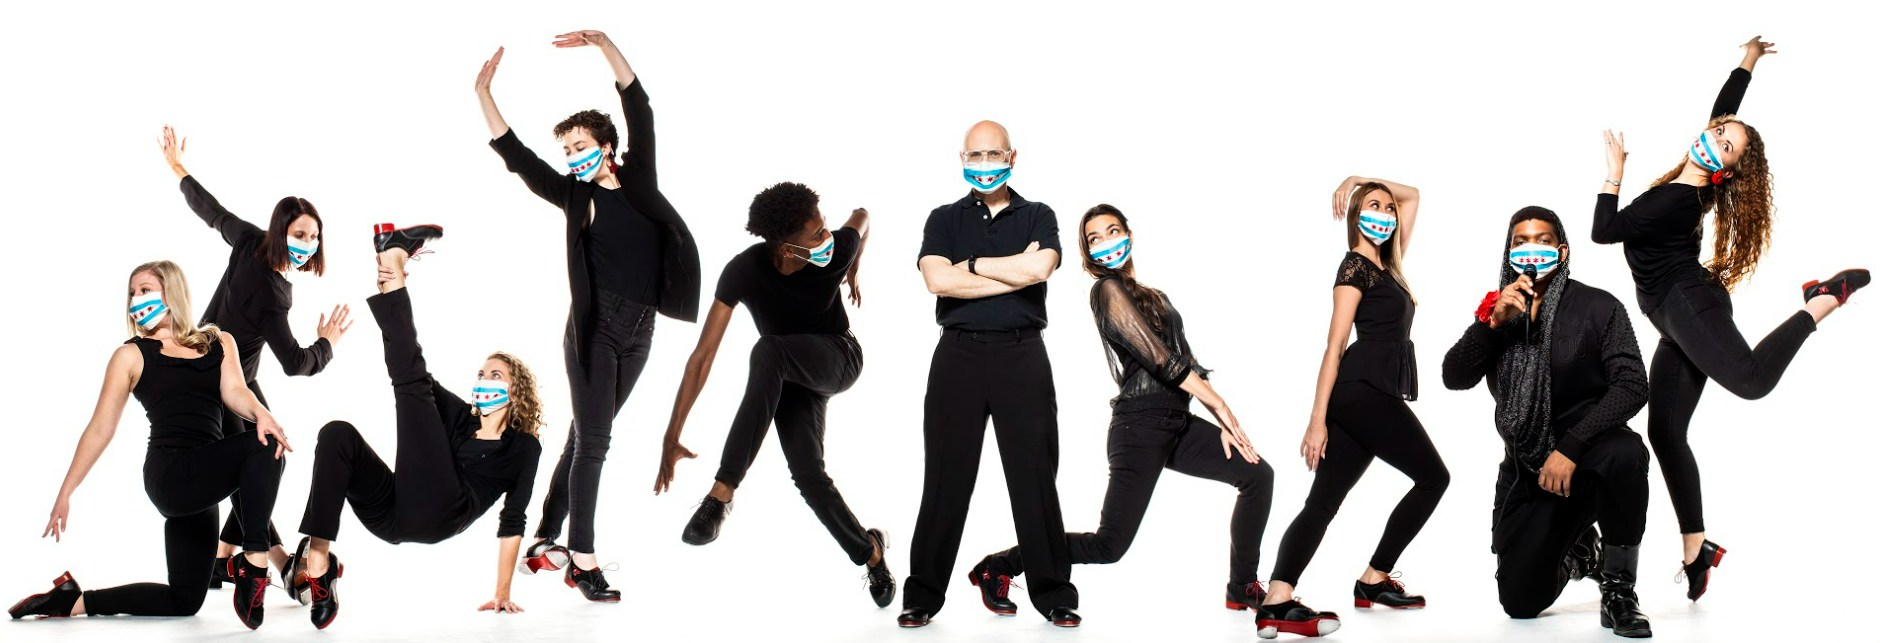 10 dancers dressed in black wearing blue surgical masks arranged in a row in various poses